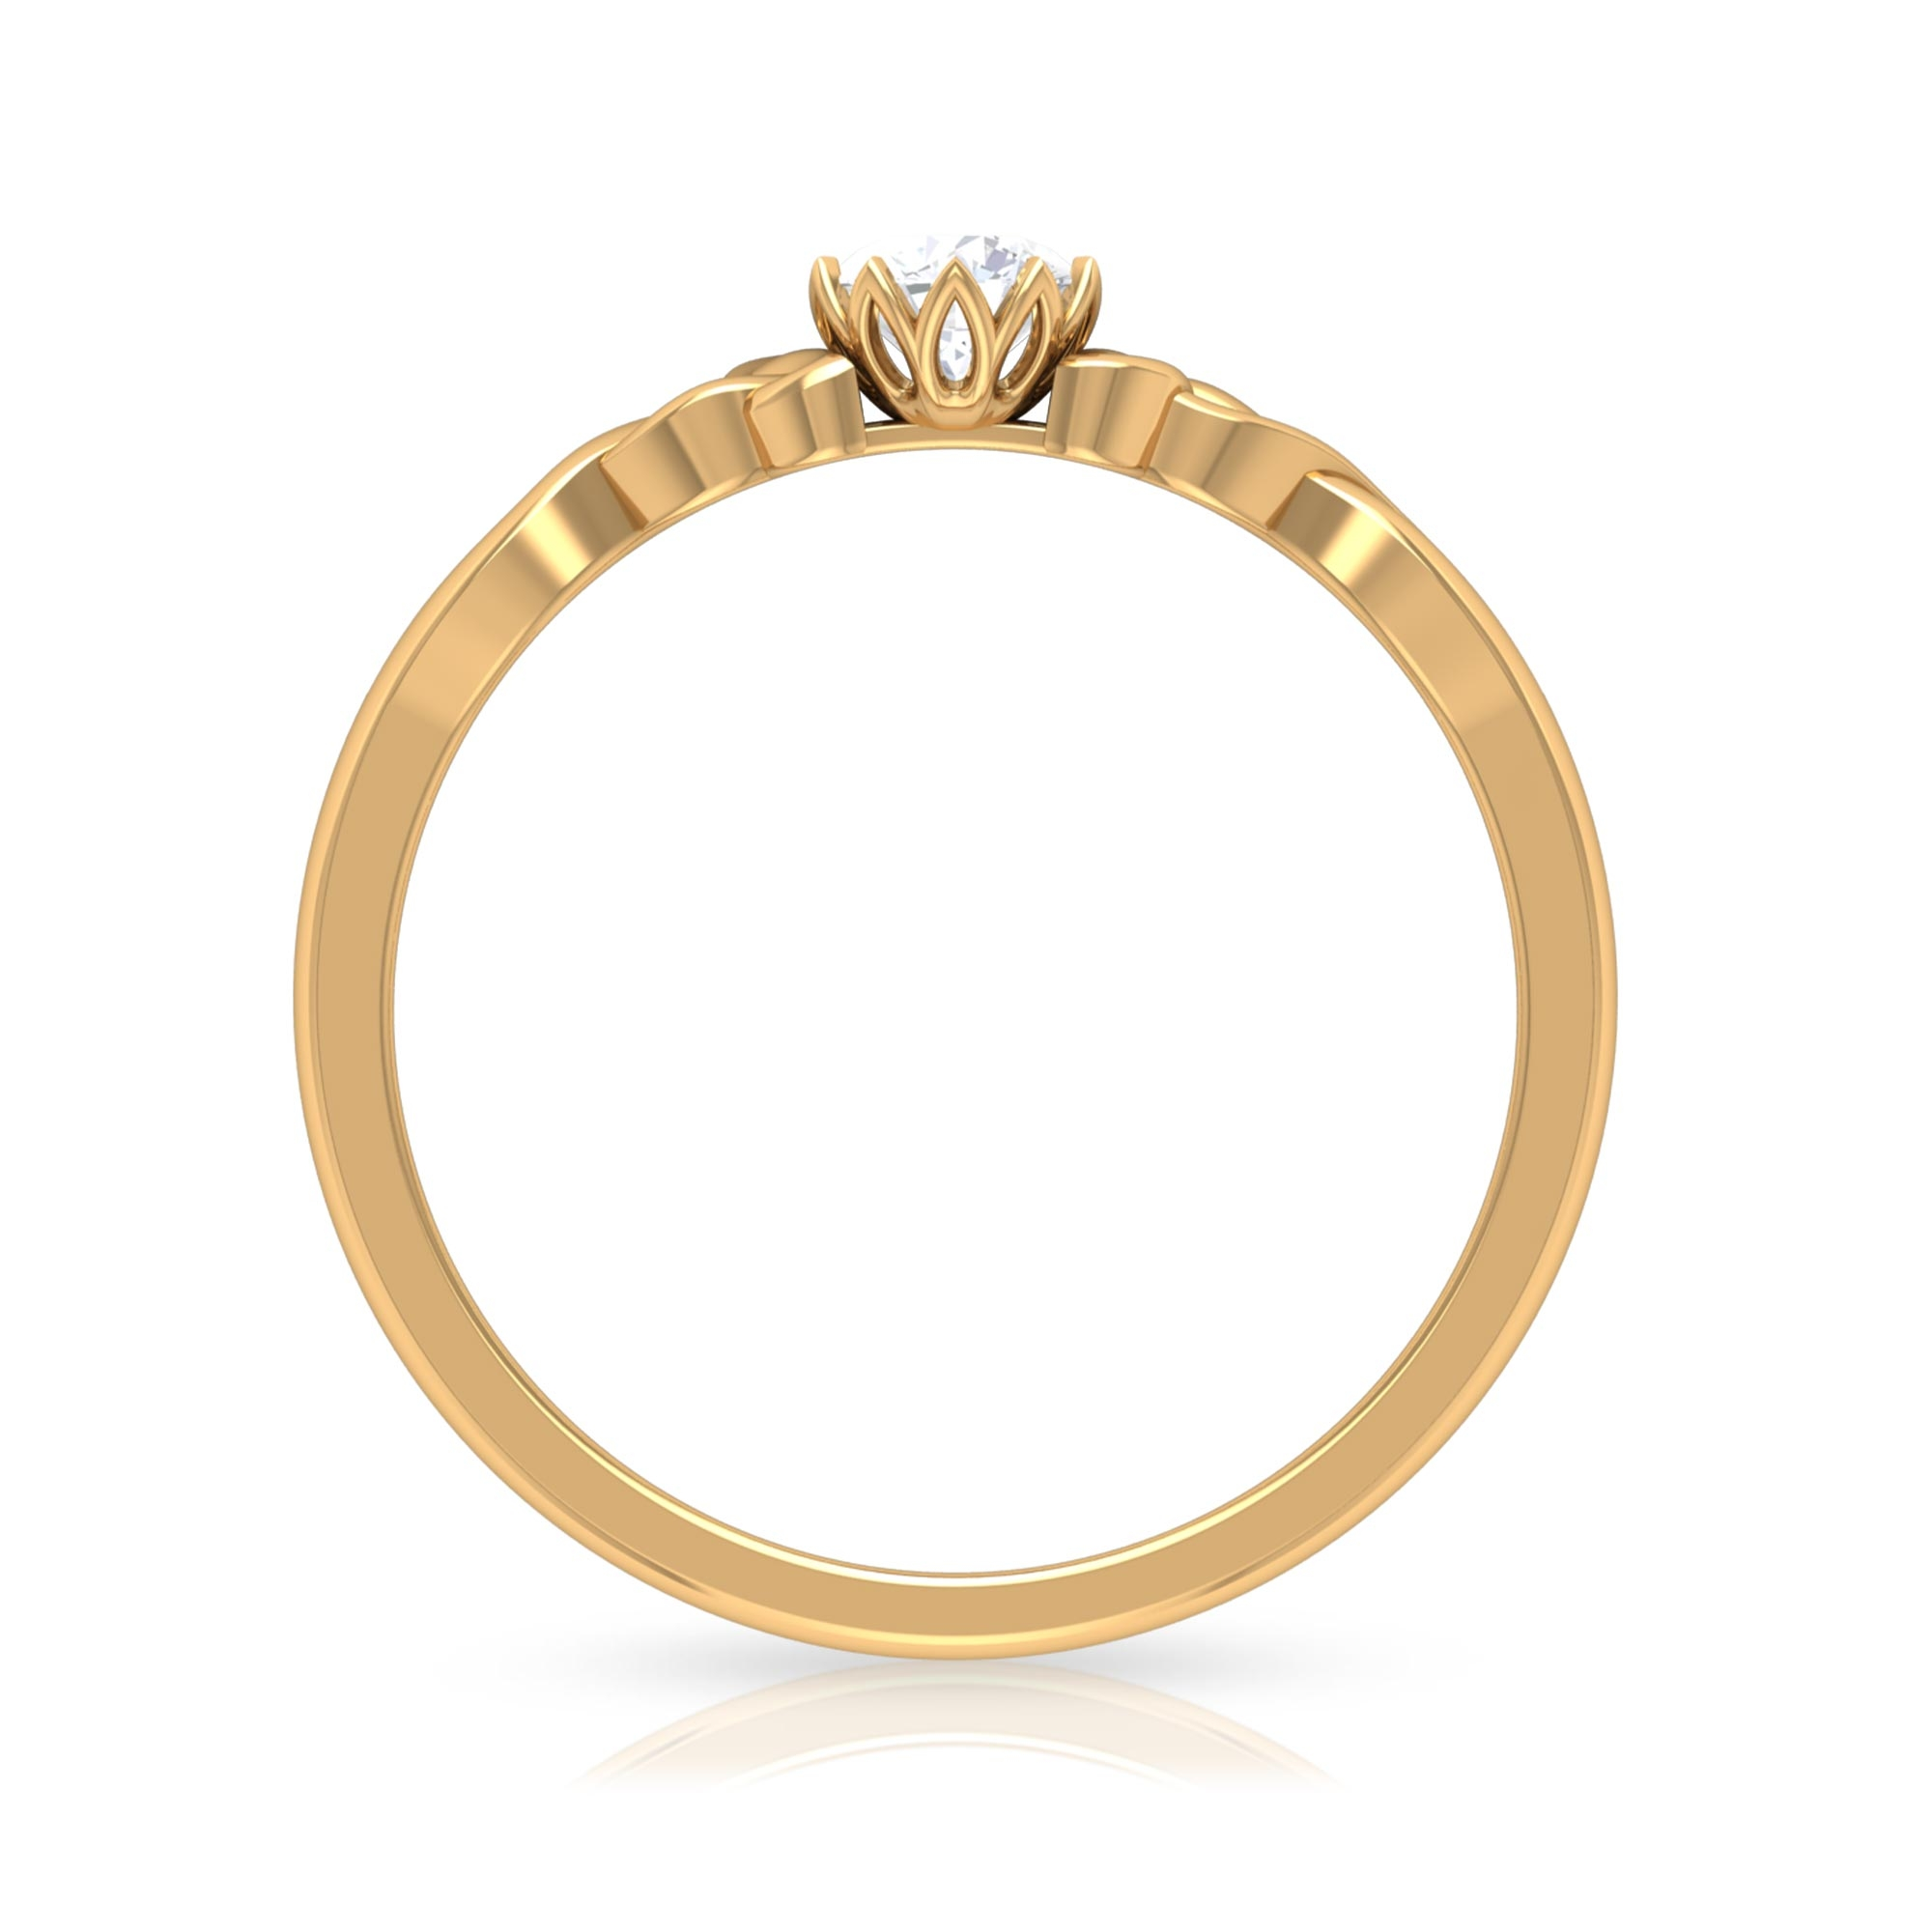 4 MM Round Cut Diamond Solitaire Ring in Lotus Basket Setting with Celtic Details